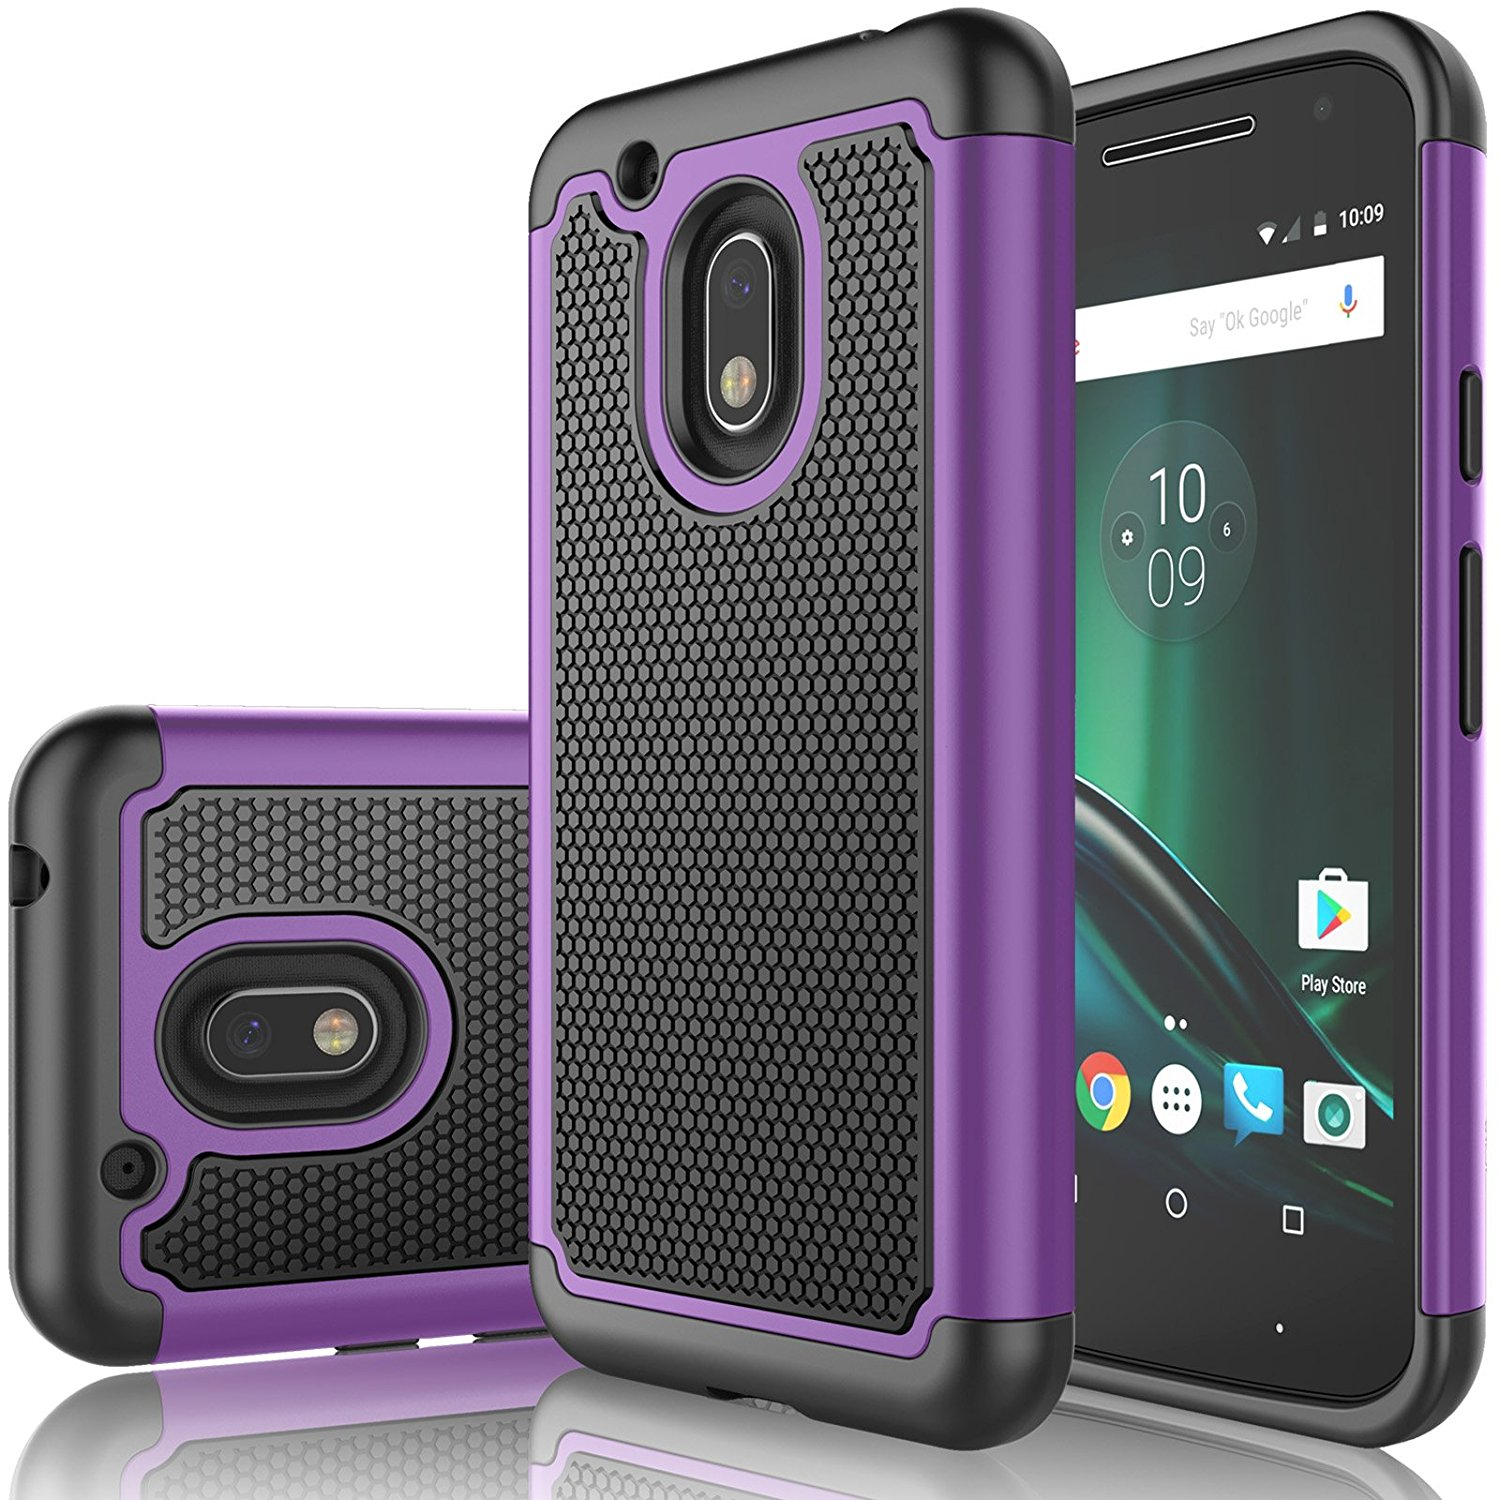 Moto G4 Play Case, Moto G Play Case For Girls, Tekcoo [Tmajor] Shock Absorbing Rubber Plastic [Purple] Scratch Resistant Defender Bumper Rugged Slim Grip Hard Cover Cases For Motorola G4 Play XT1607